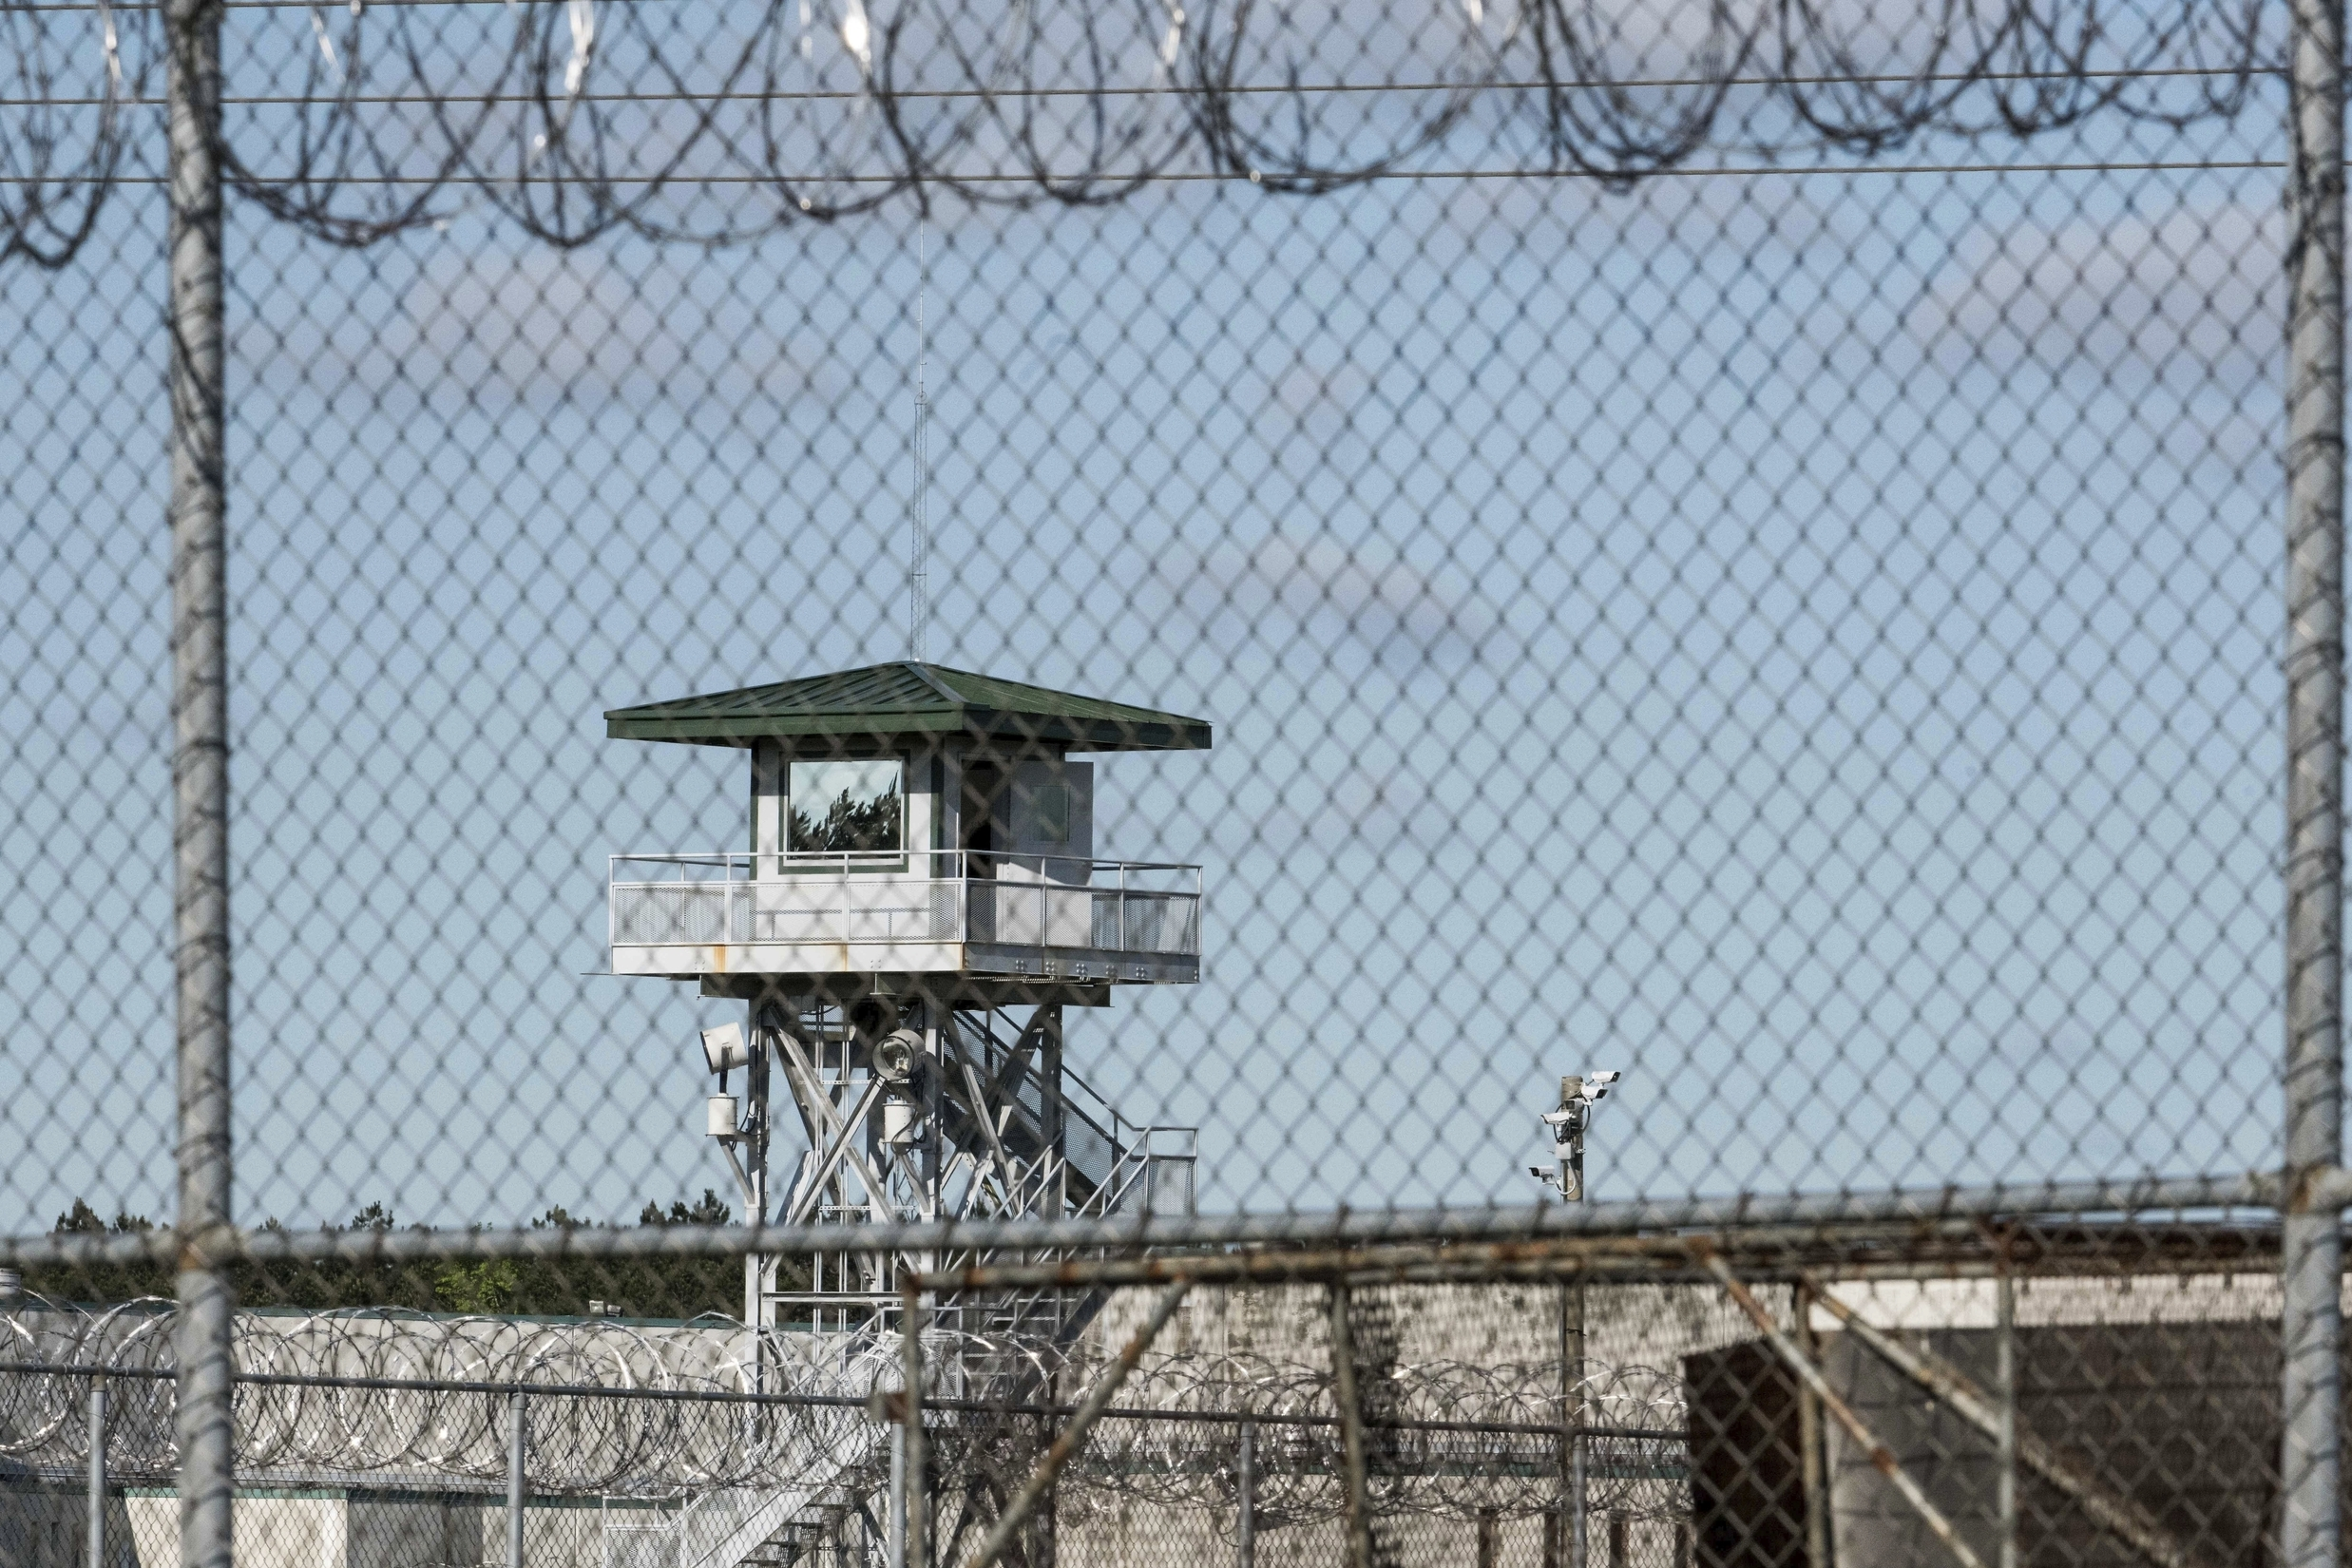 FILE - In this April 16, 2018, file photo, a guard tower stands above the Lee Correctional Institution, a maximum security prison in Bishopville, S.C., the morning after severl inmates were killed amid fighting among prisoners. South Carolina officials hope they can combat the dangers of illegal cellphones behind bars by providing inmates with a different kind of technological device. Corrections Director Bryan Stirling tells The Associated Press Thursday, Jan. 17, 2019, he's going to start handing out tablet computers that inmates can use for calling family members, watching movies and studying educational materials.  (AP Photo/Sean Rayford, File)